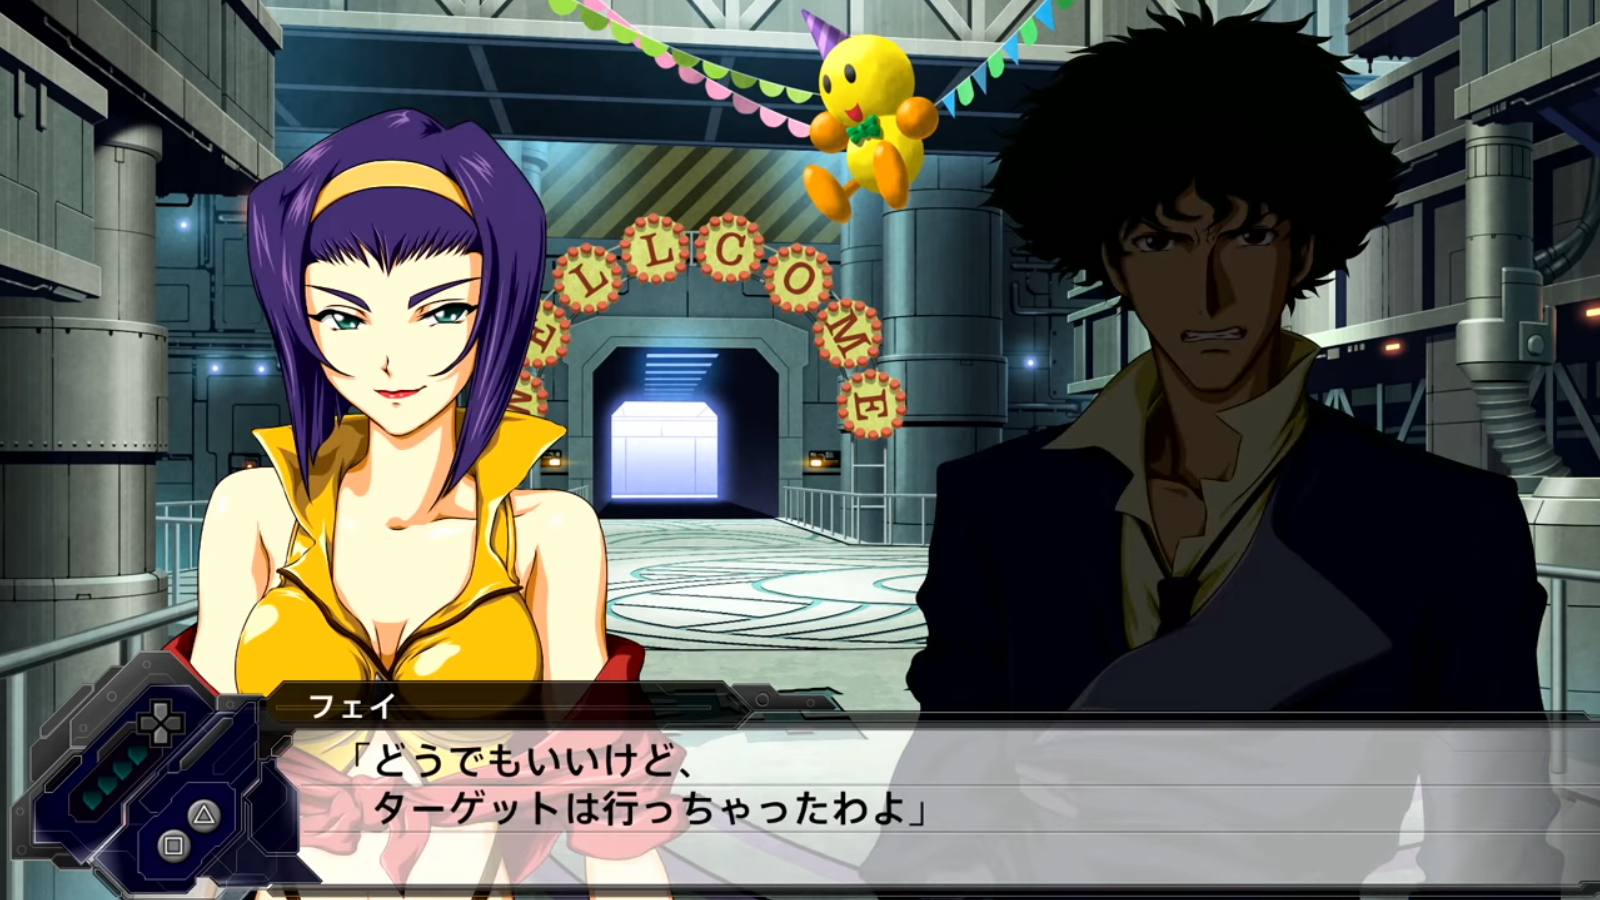 Super Robot Wars T: 21 minutes of gameplay from the game's second chapter